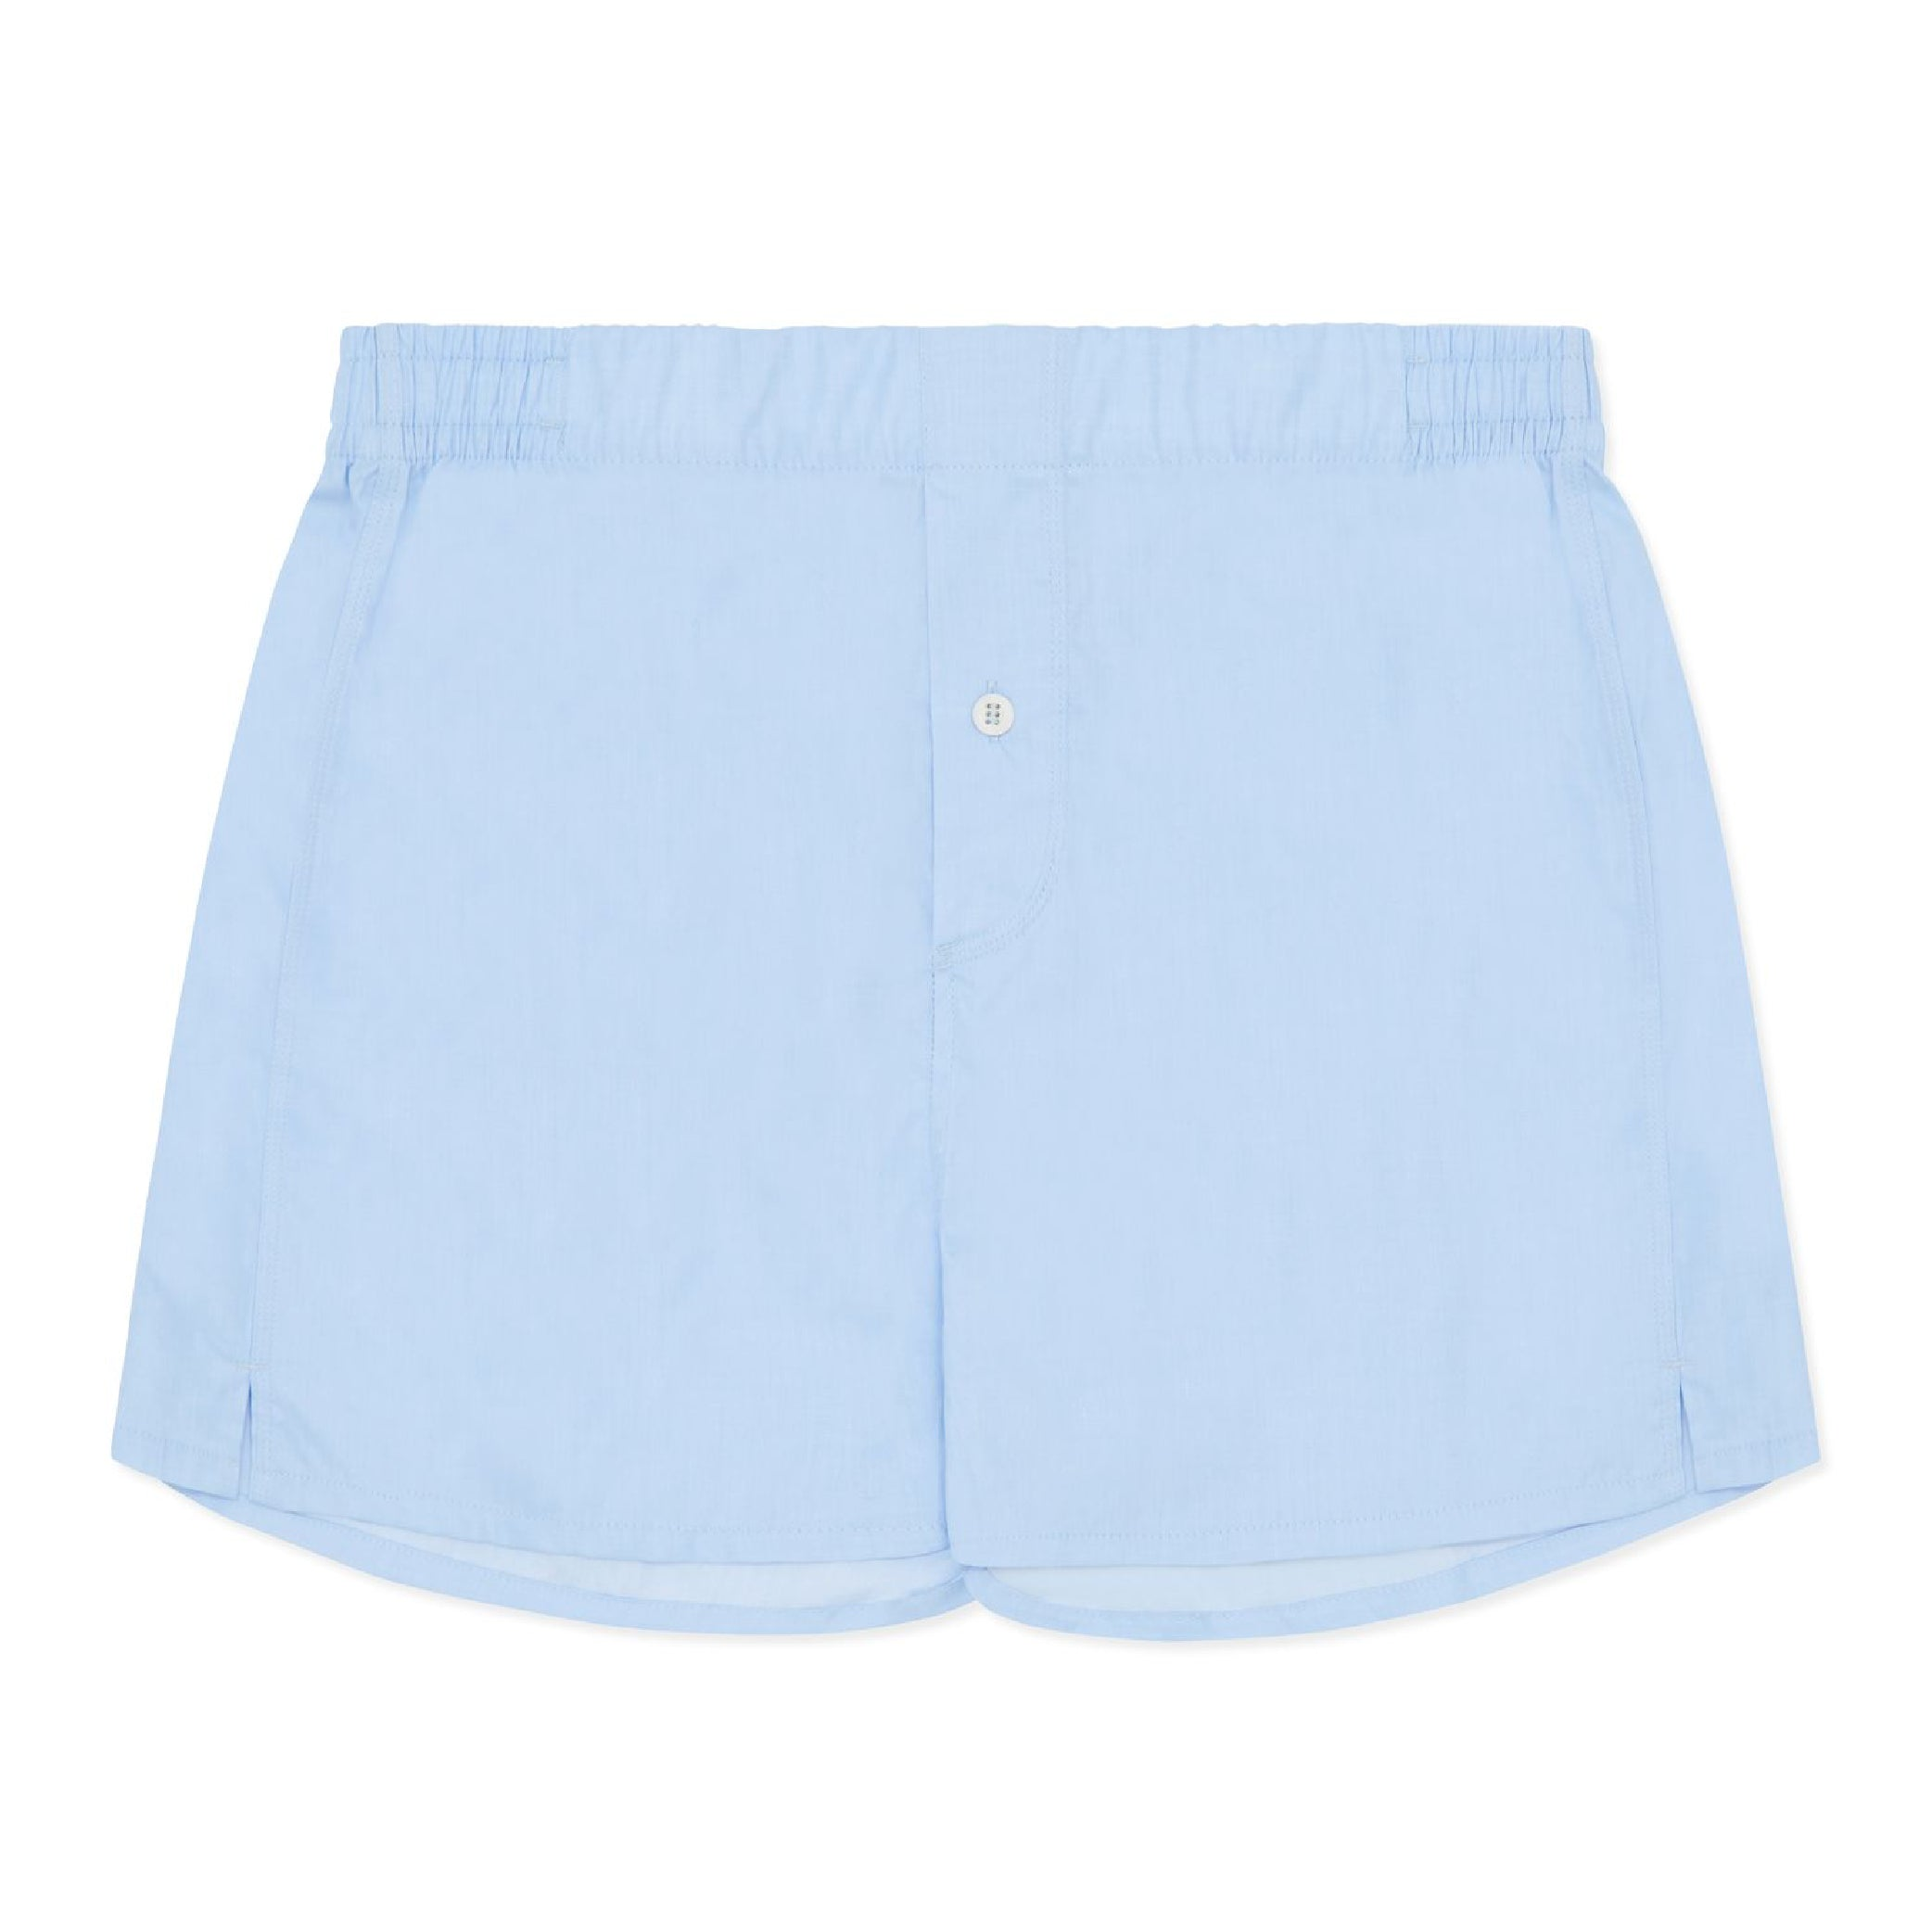 3 Pack Boxer Short - Pink Stripe, Sky Blue, Classic White